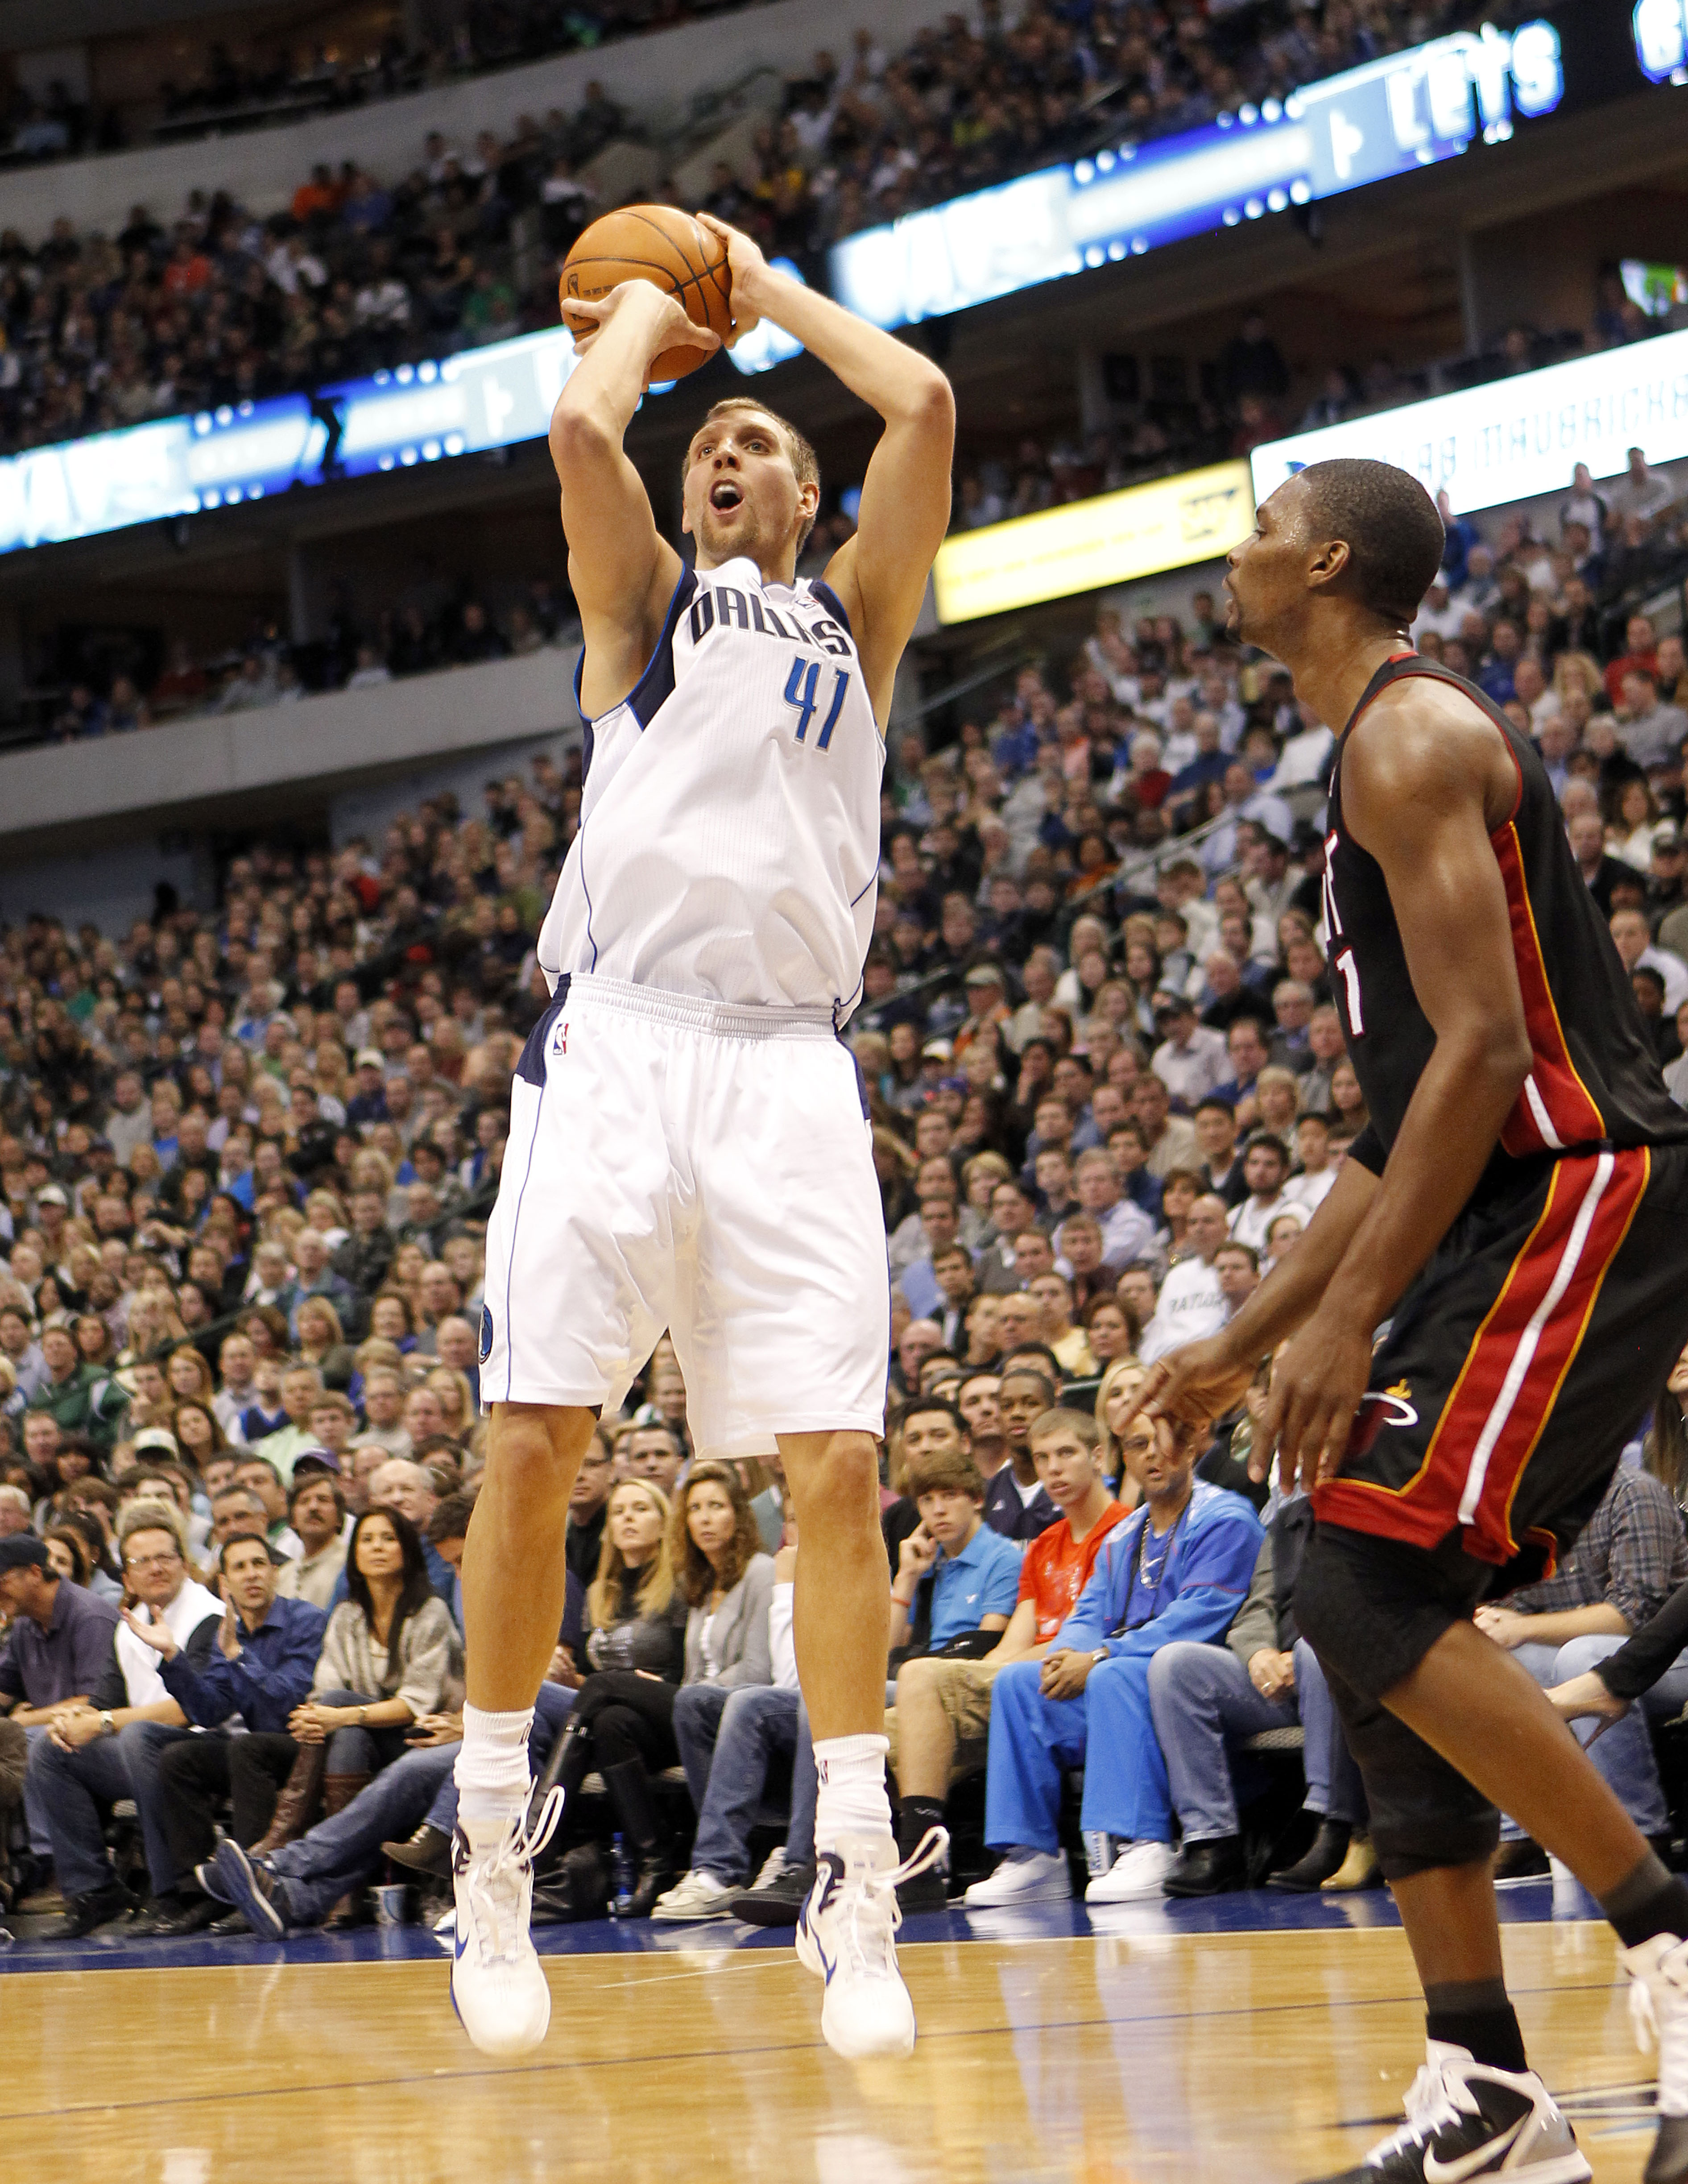 DALLAS - NOVEMBER 27: Dirk Nowitzki #41 of the Dallas Mavericks shoots over Chris Bosh #1 of the Miami Heat on November 27, 2010 at the American Airlines Center in Dallas, Texas. NOTE TO USER: User expressly acknowledges and agrees that, by downloading an